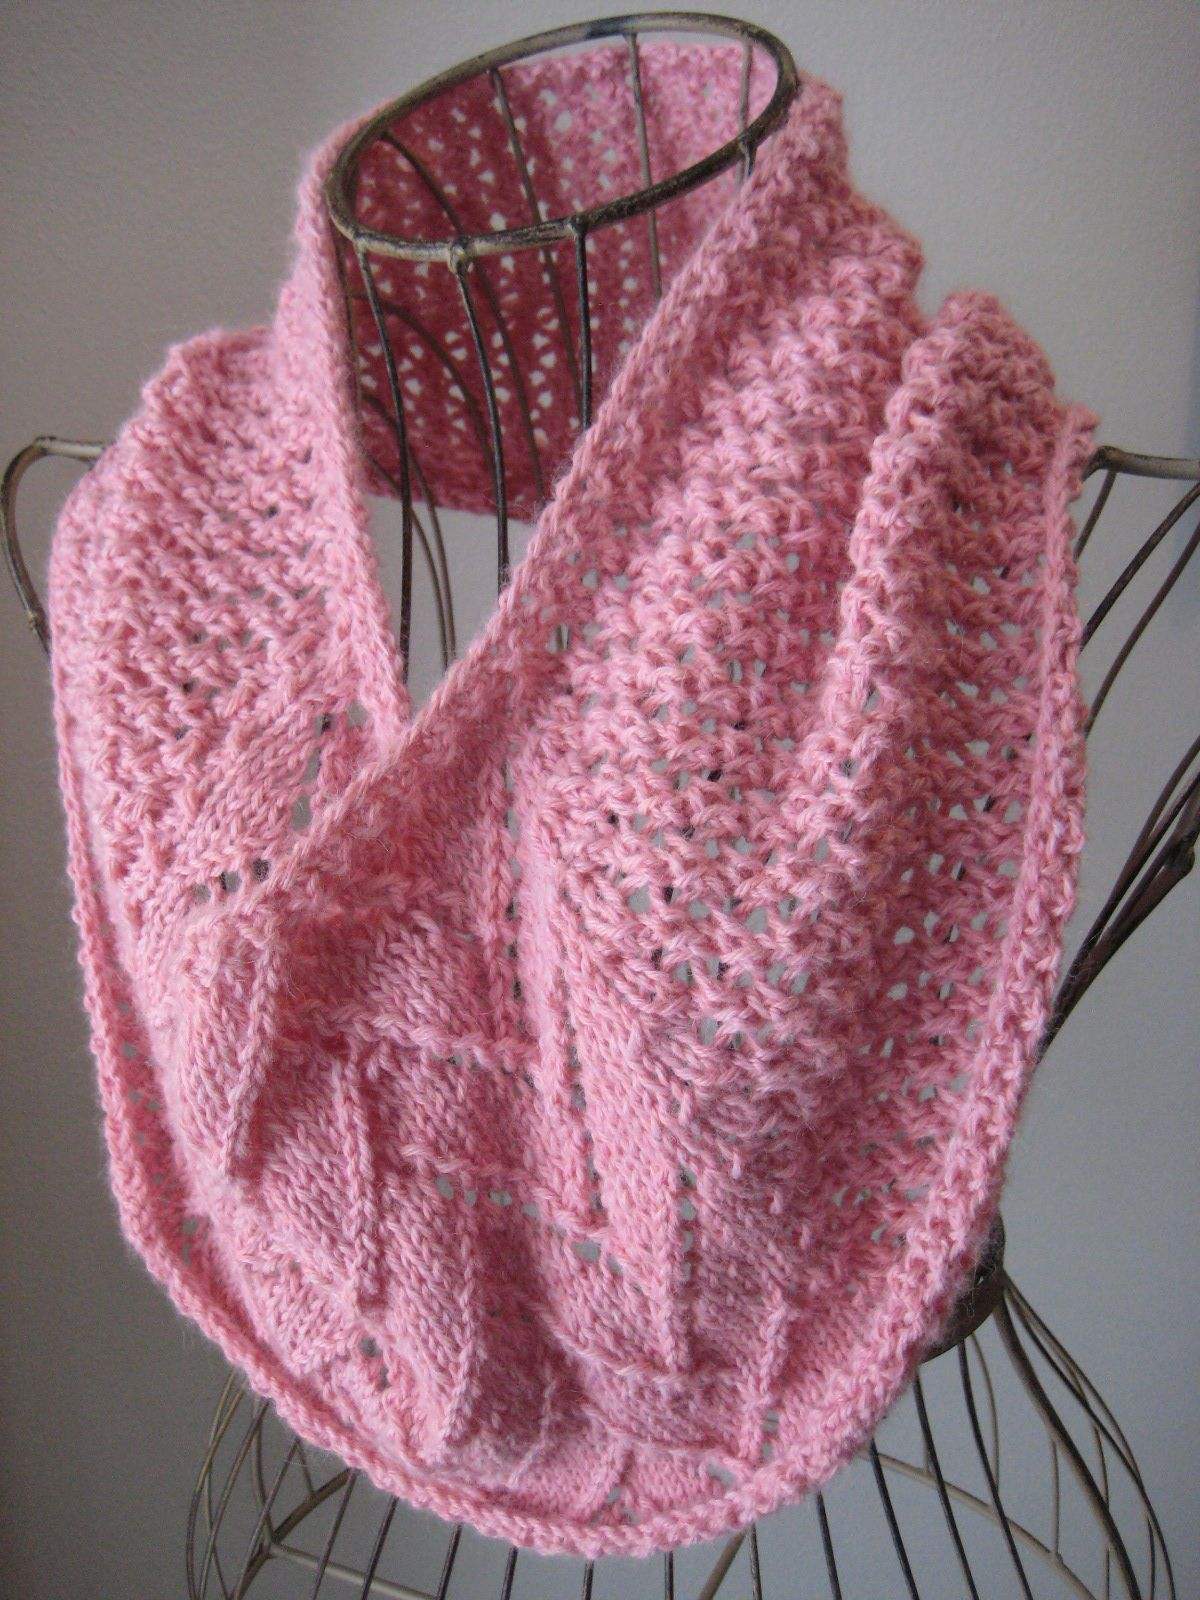 Free Knitting Pattern - Cowls and Neck Warmers: Flemish Block Cowl ...